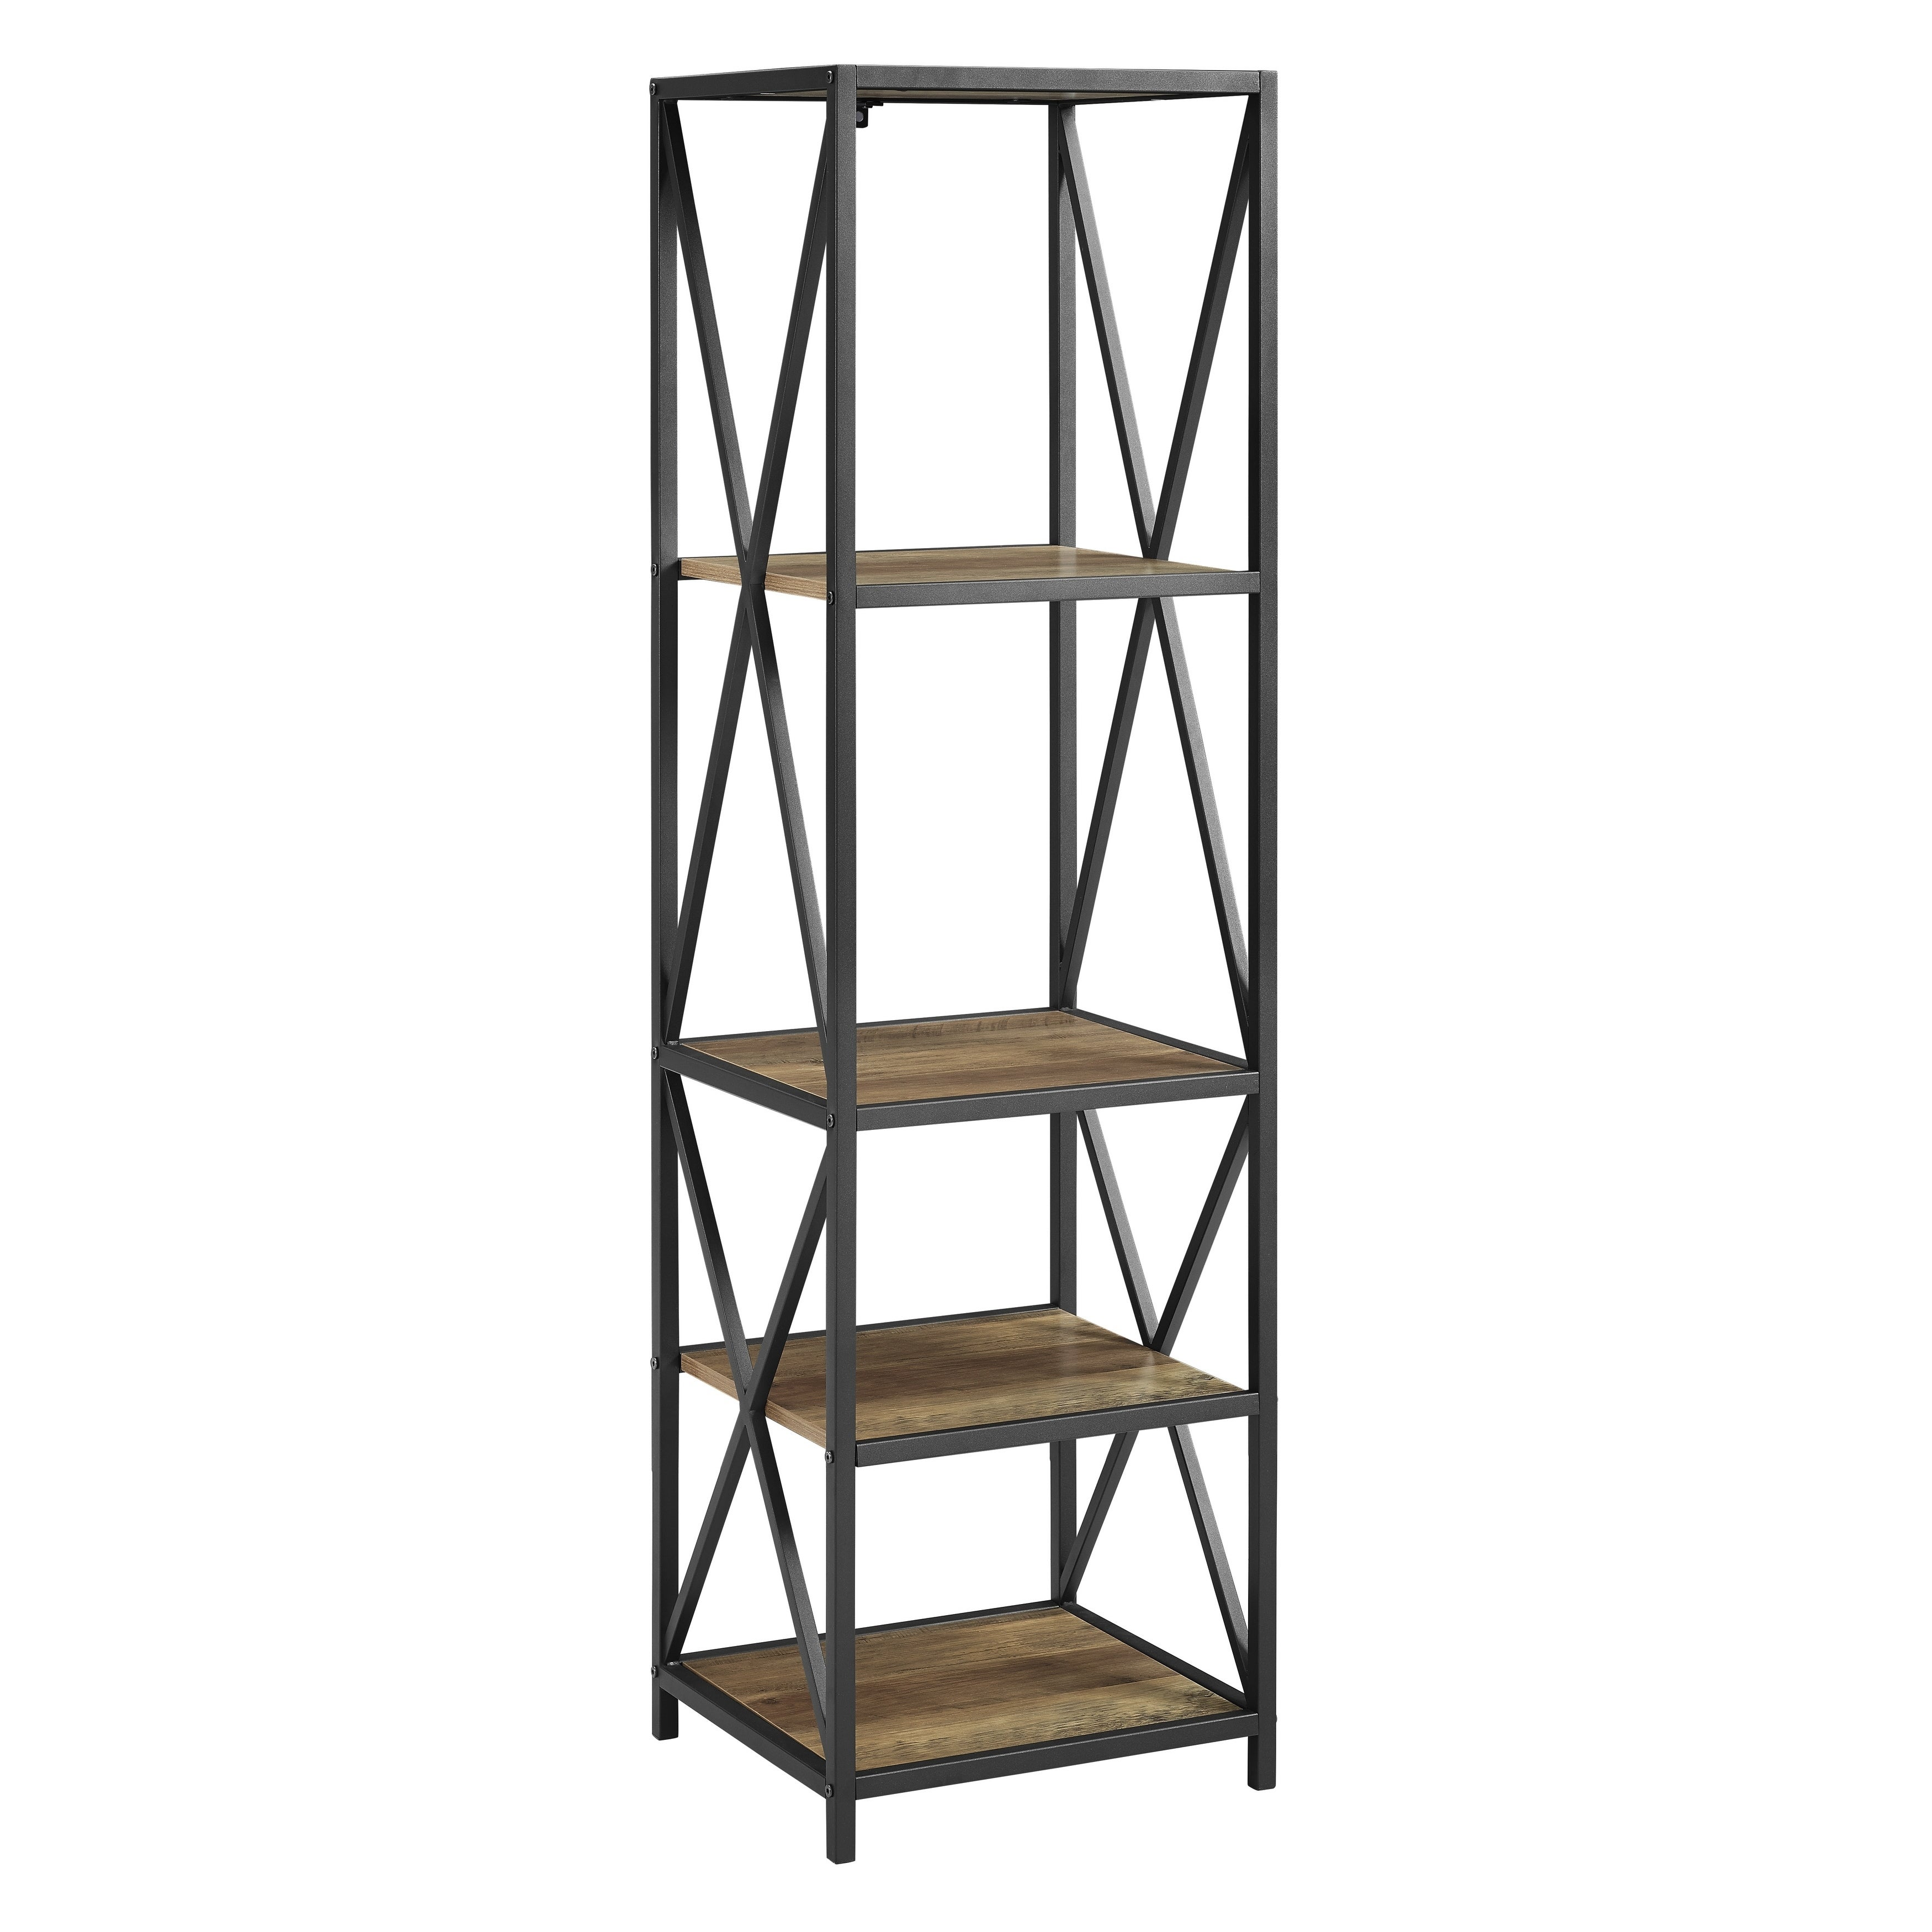 Shop 61 tall x frame metal wood bookshelf 18 x 16 x 61h free shipping today overstock com 21214376